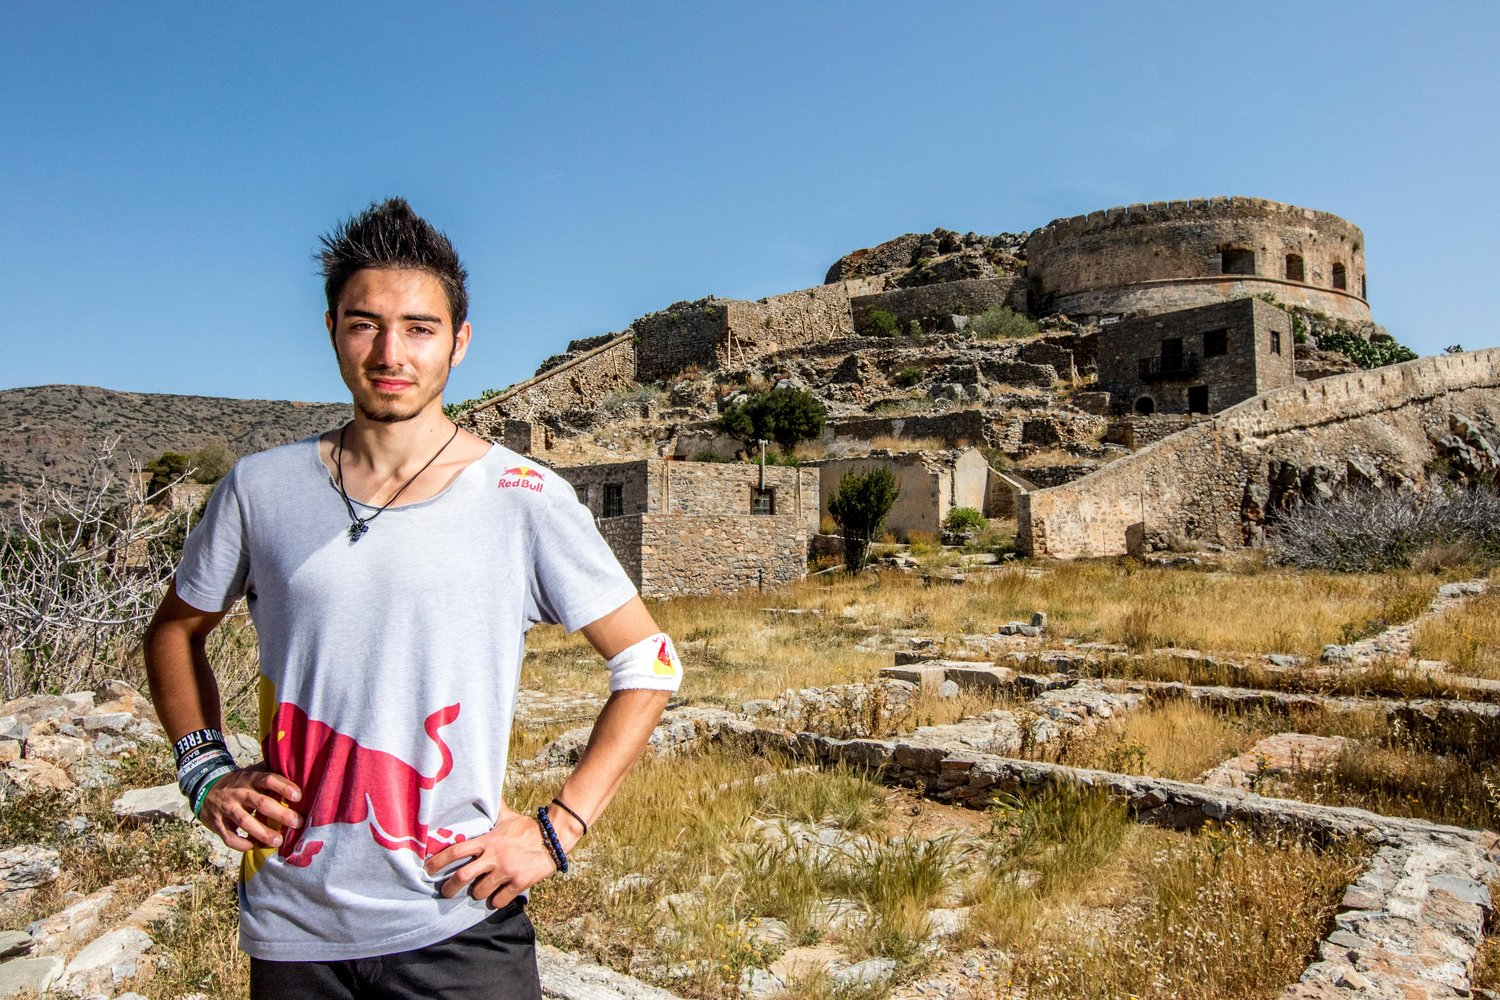 Dimitris Kyrsanidis poses for a portrait in Spinalonga island, Greece on April 13th, 2016